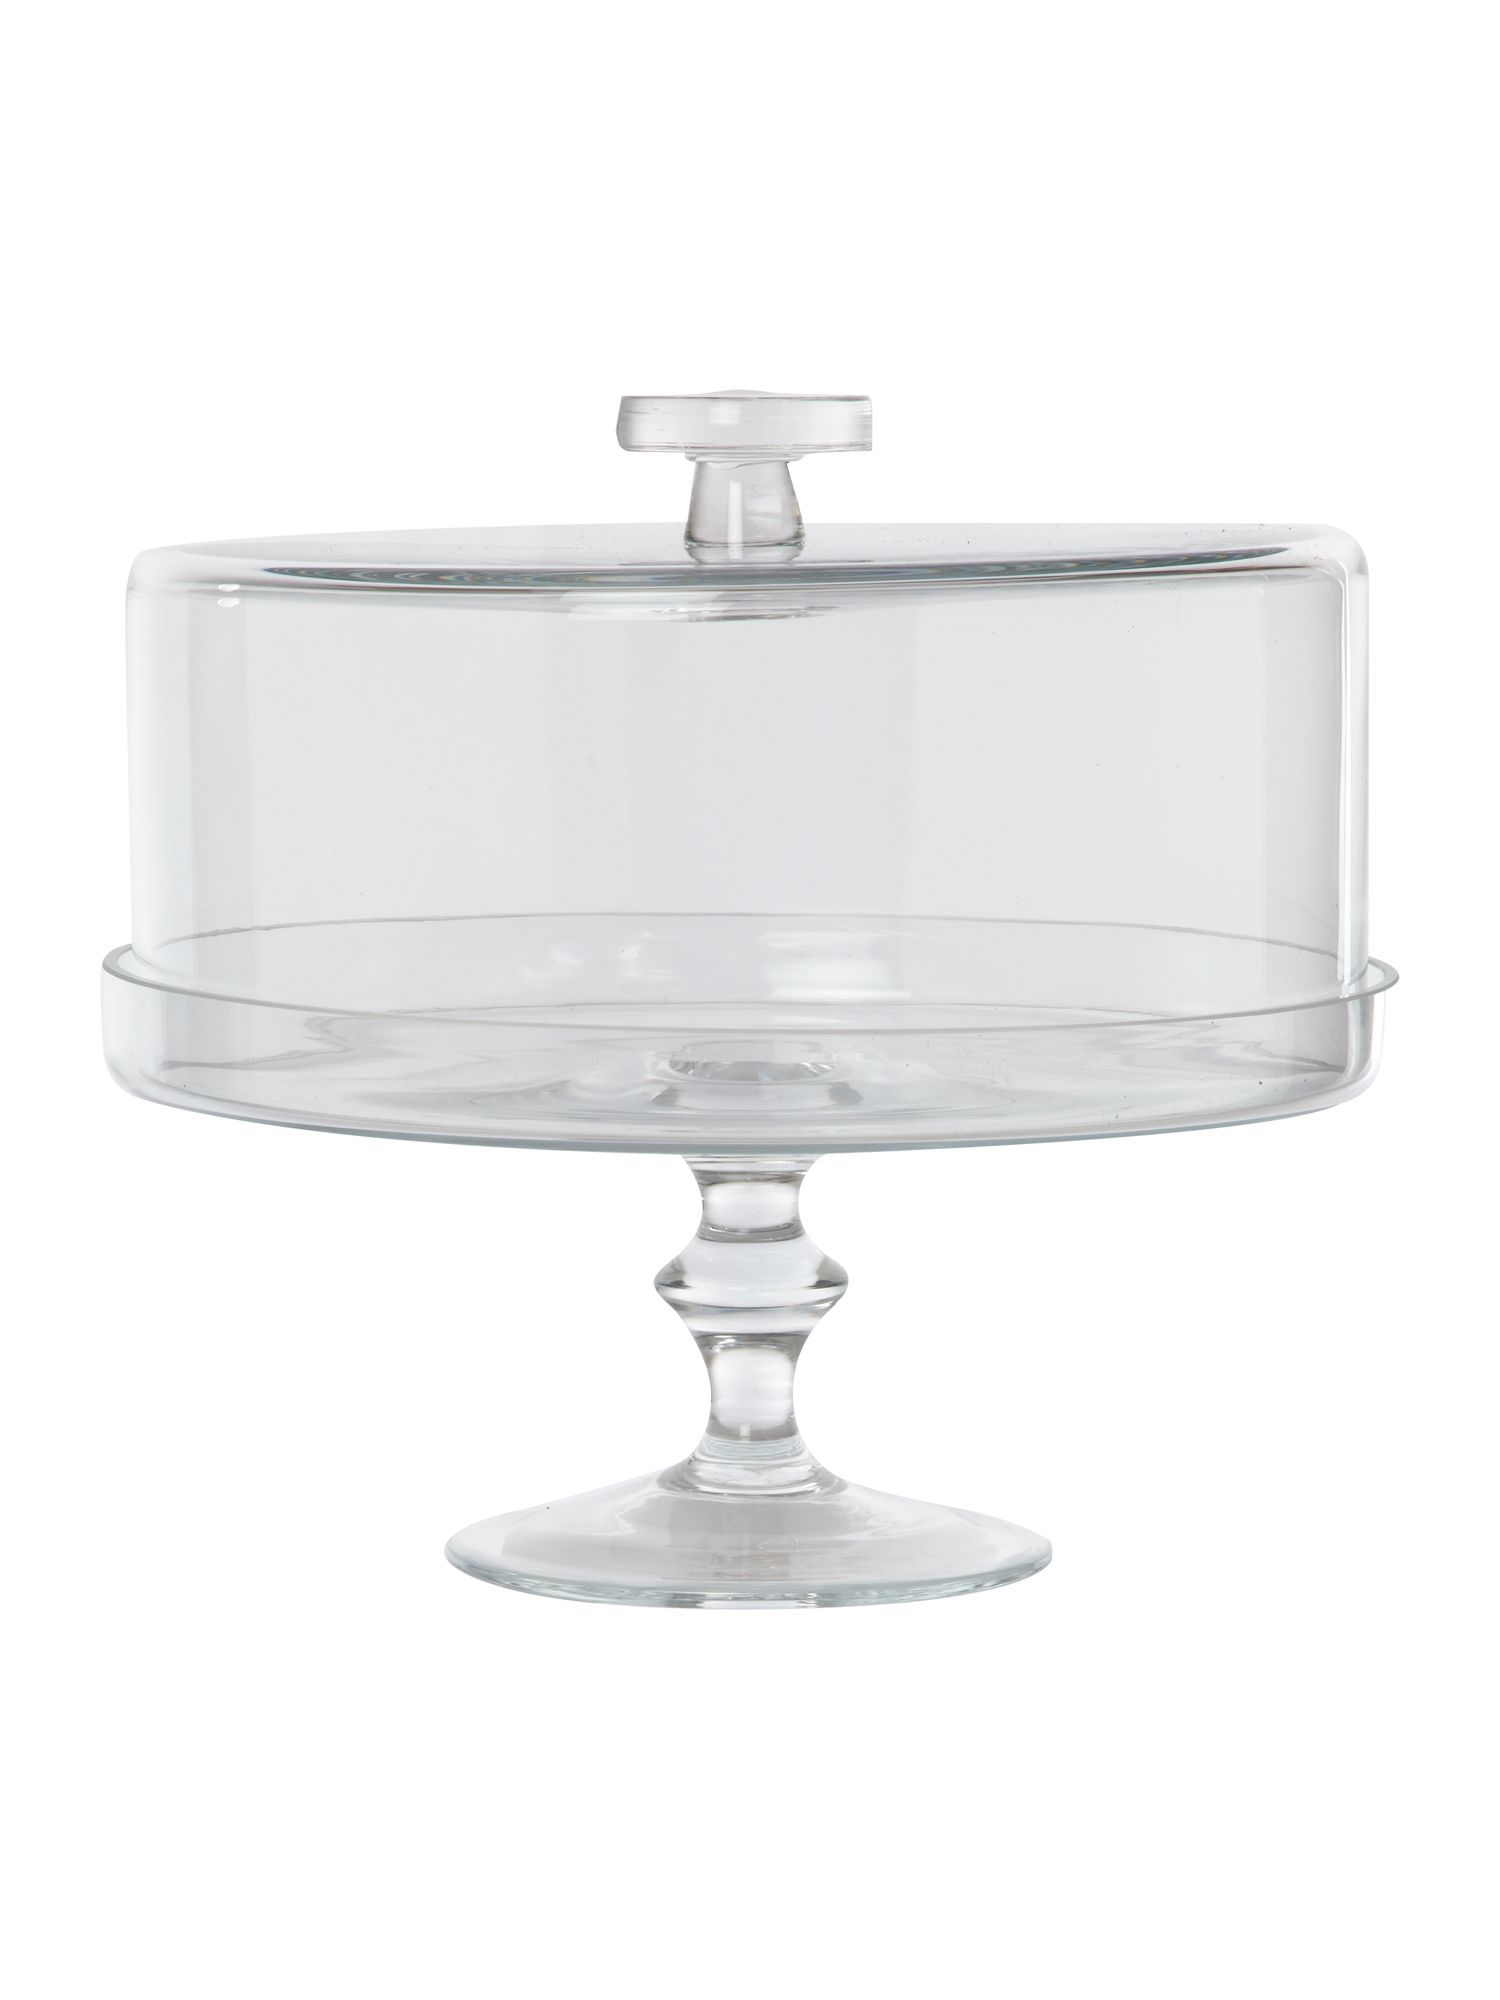 Everyday serve cake stand